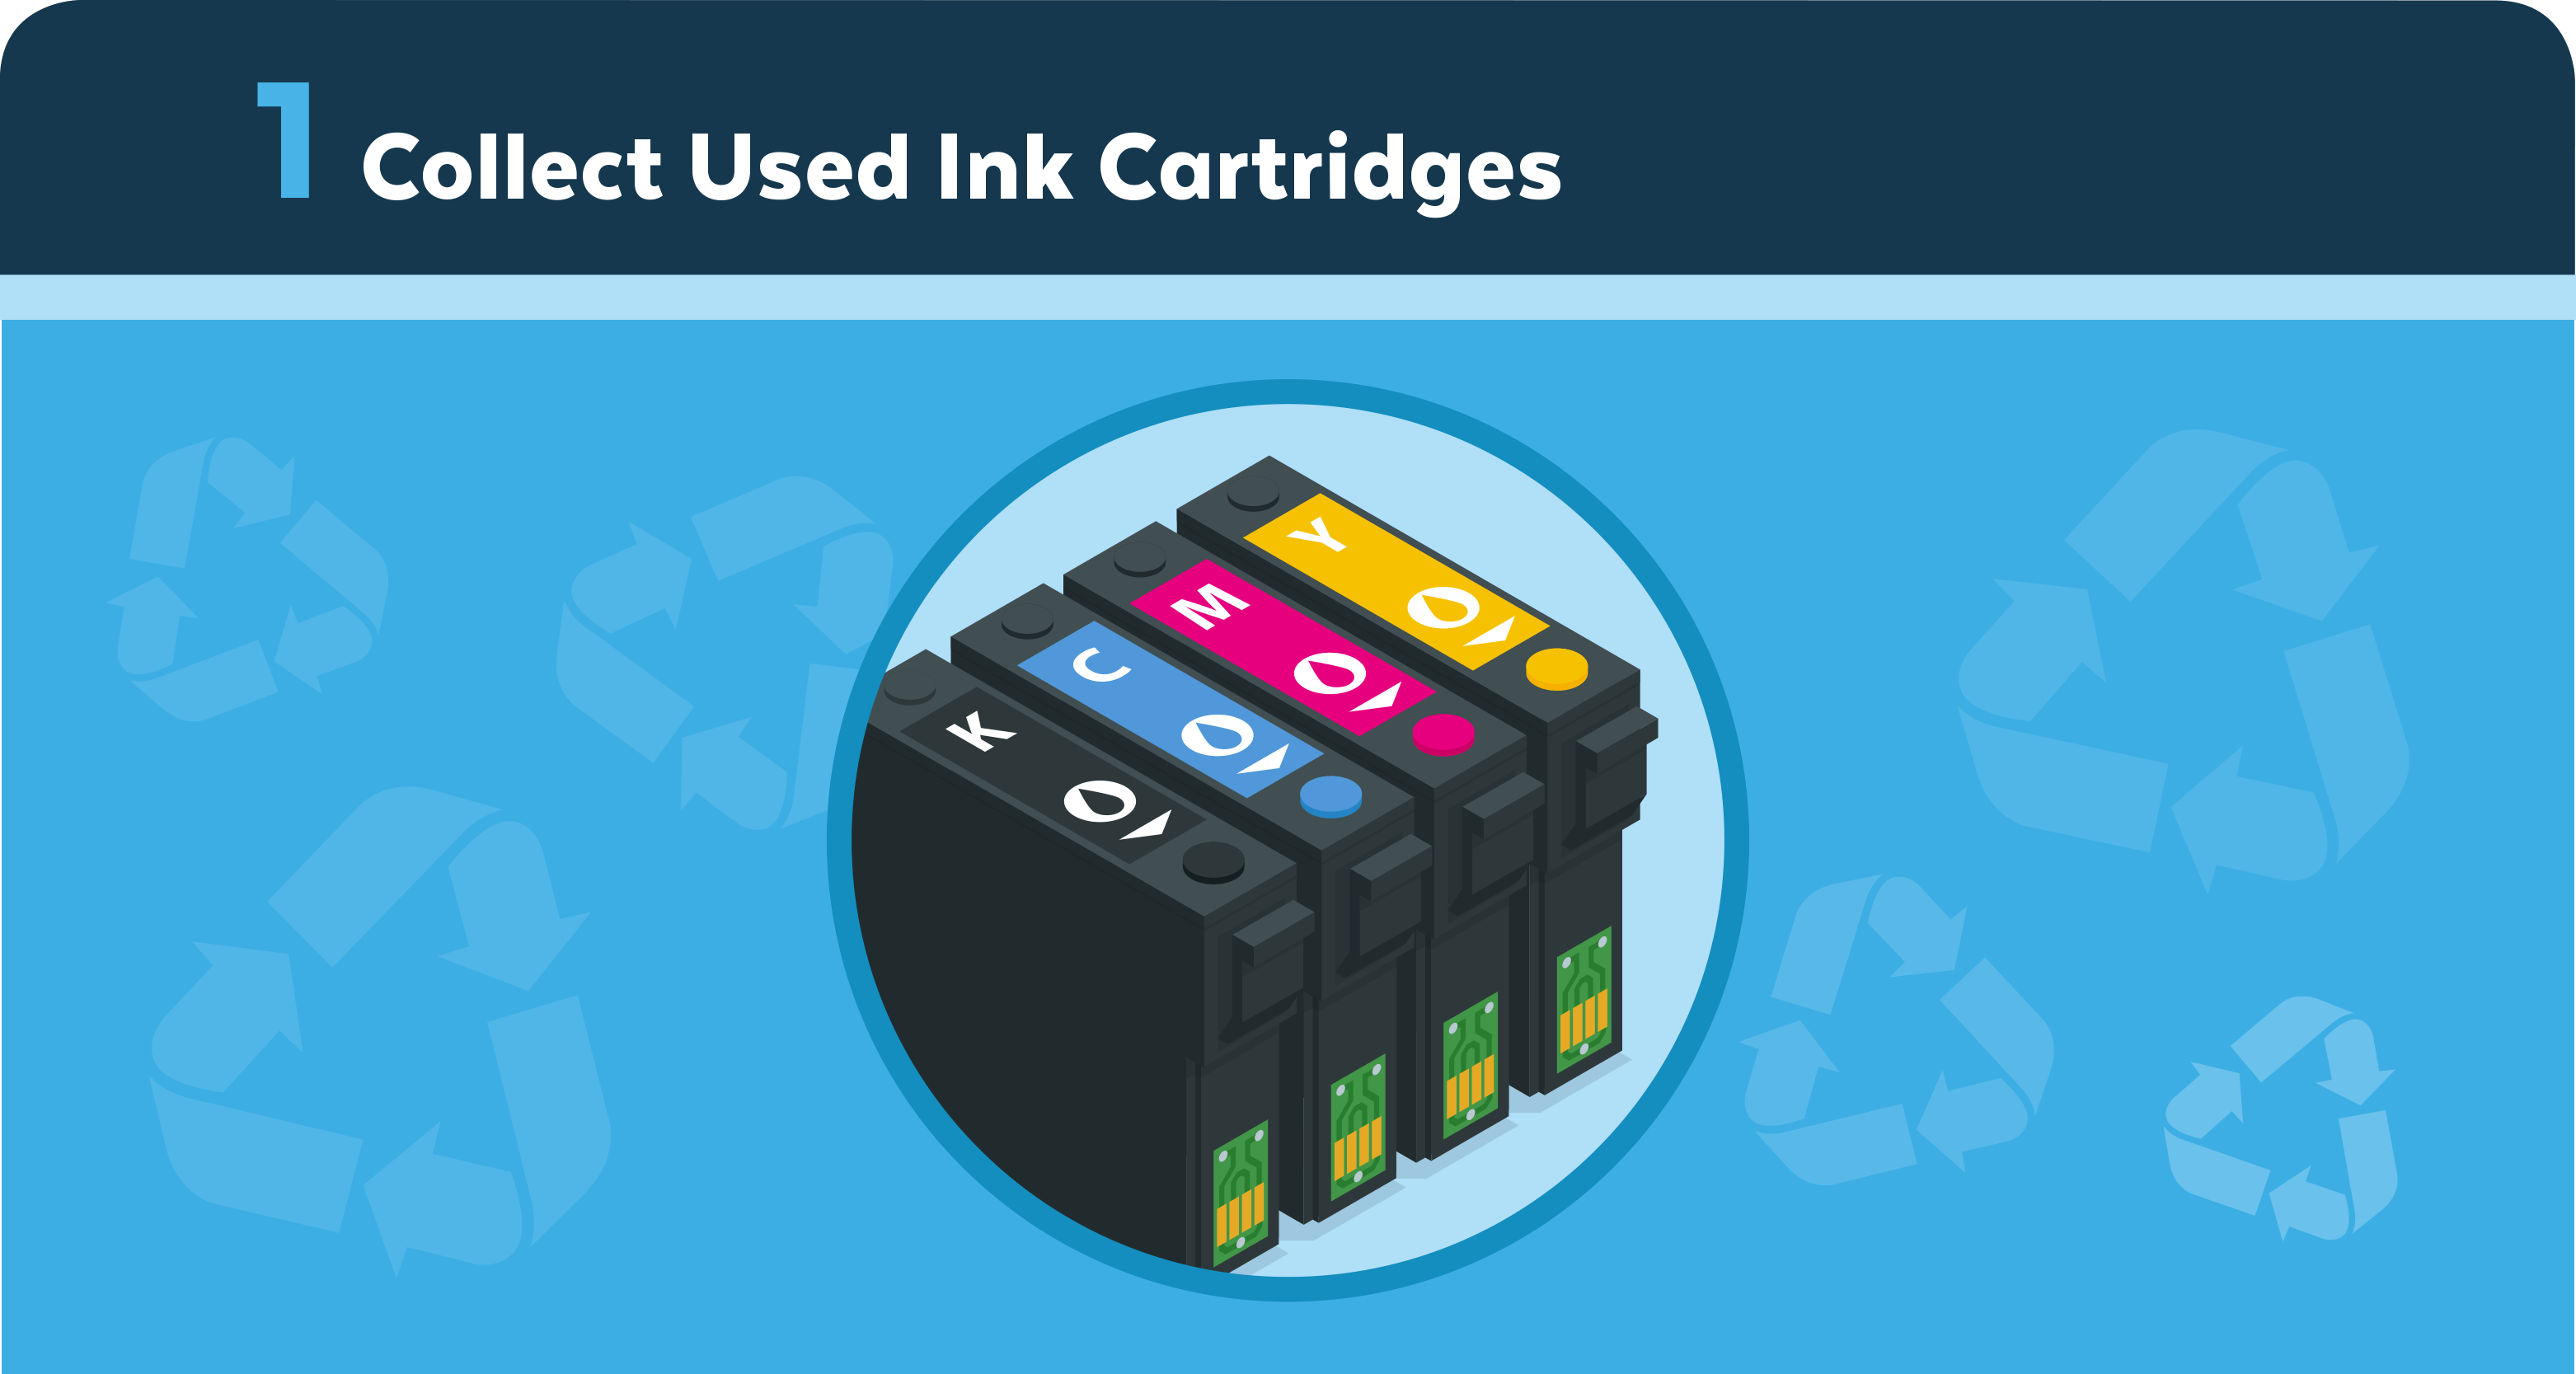 Collect Used Ink Cartridges